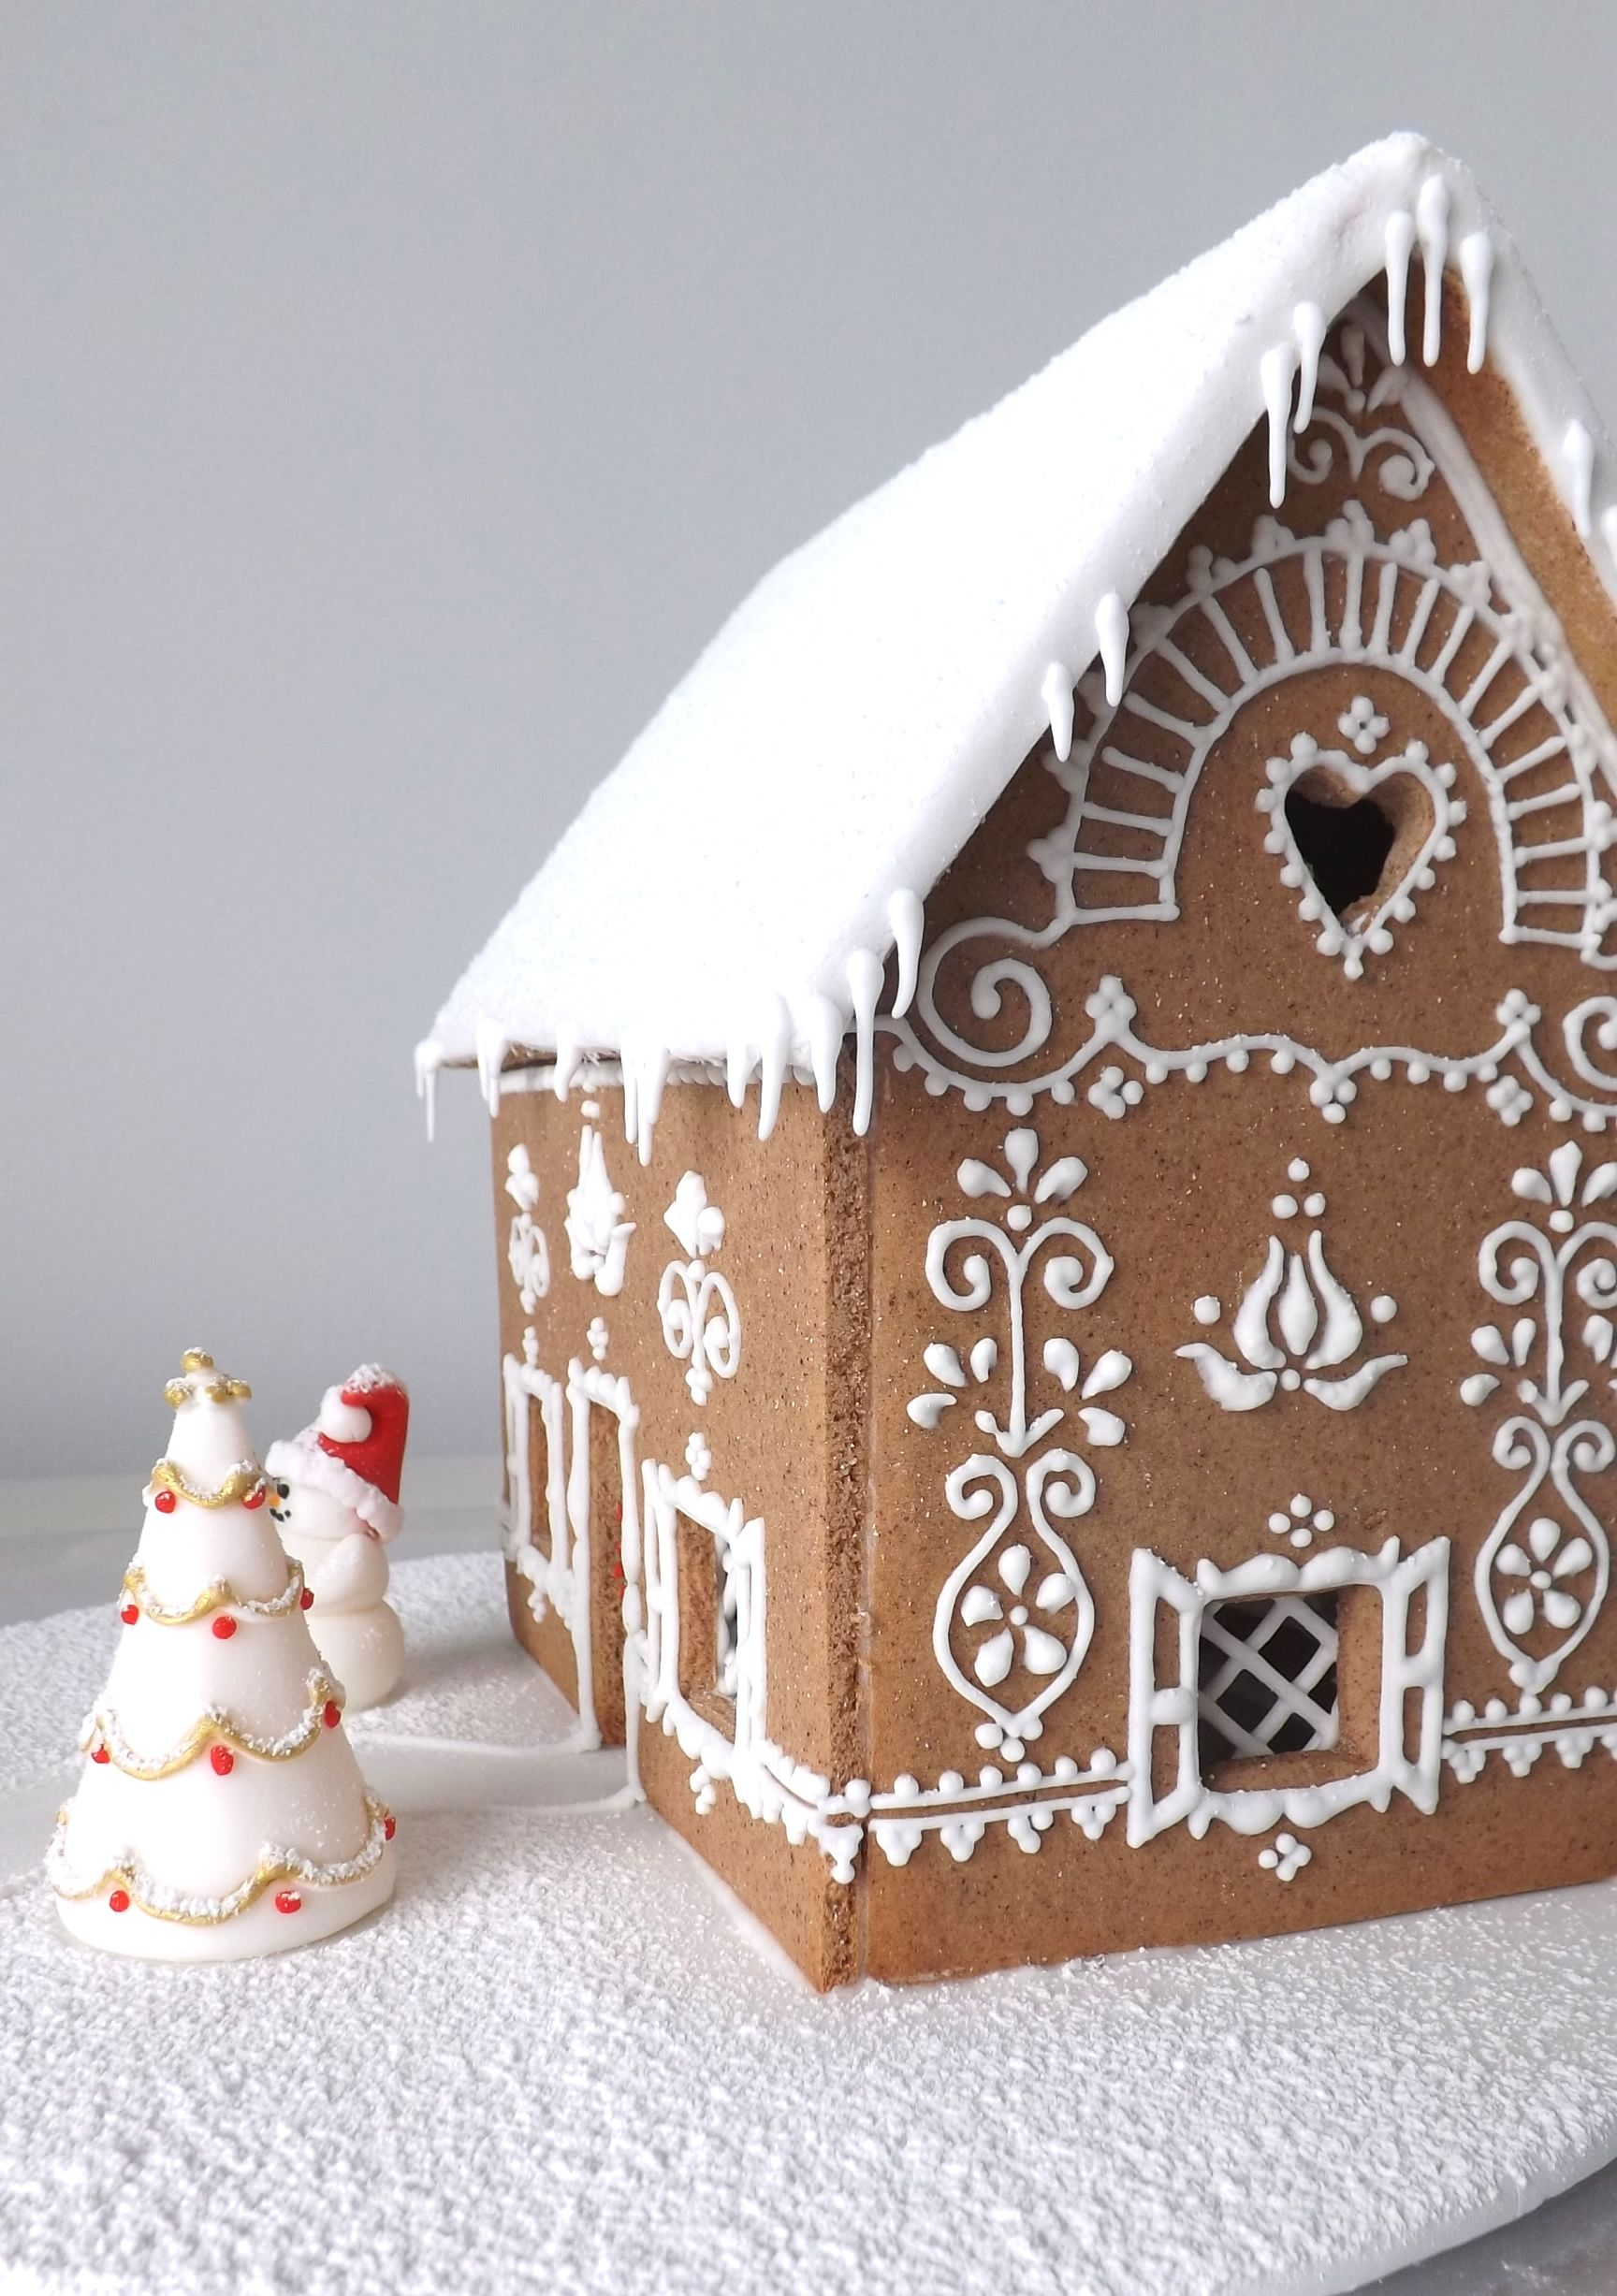 Hungarian gingerbread house for Christmas with icing decoration